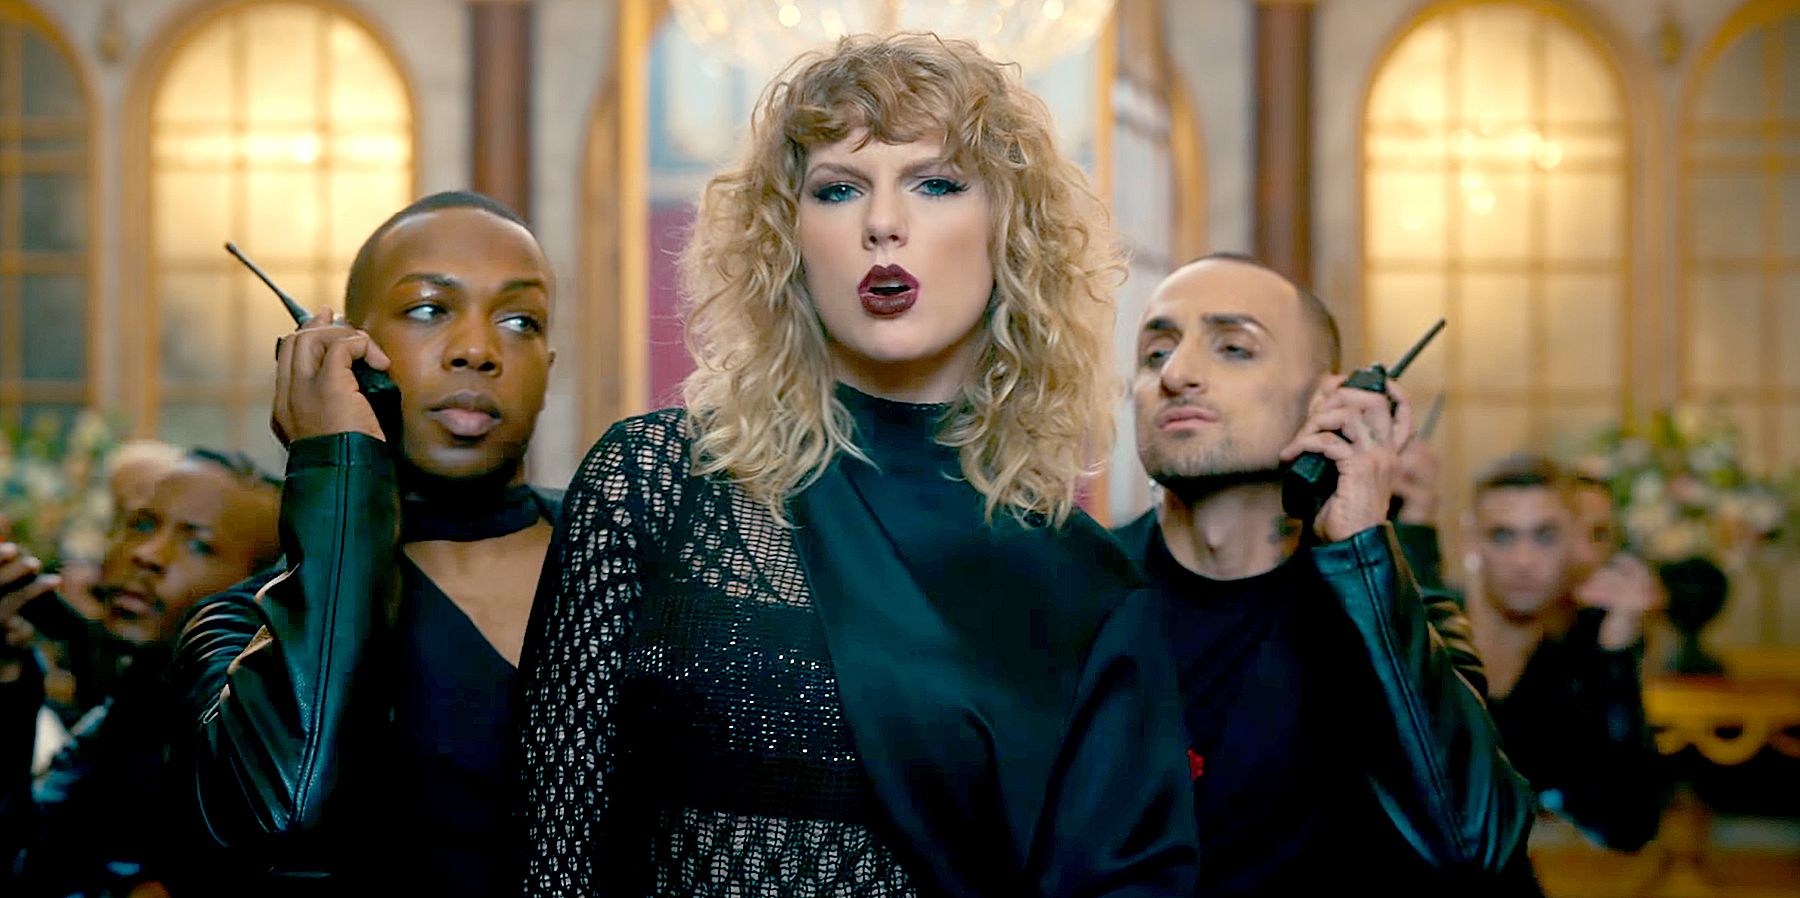 Todrick Hall and Taylor Swift in 'Look What You Made Me Do'